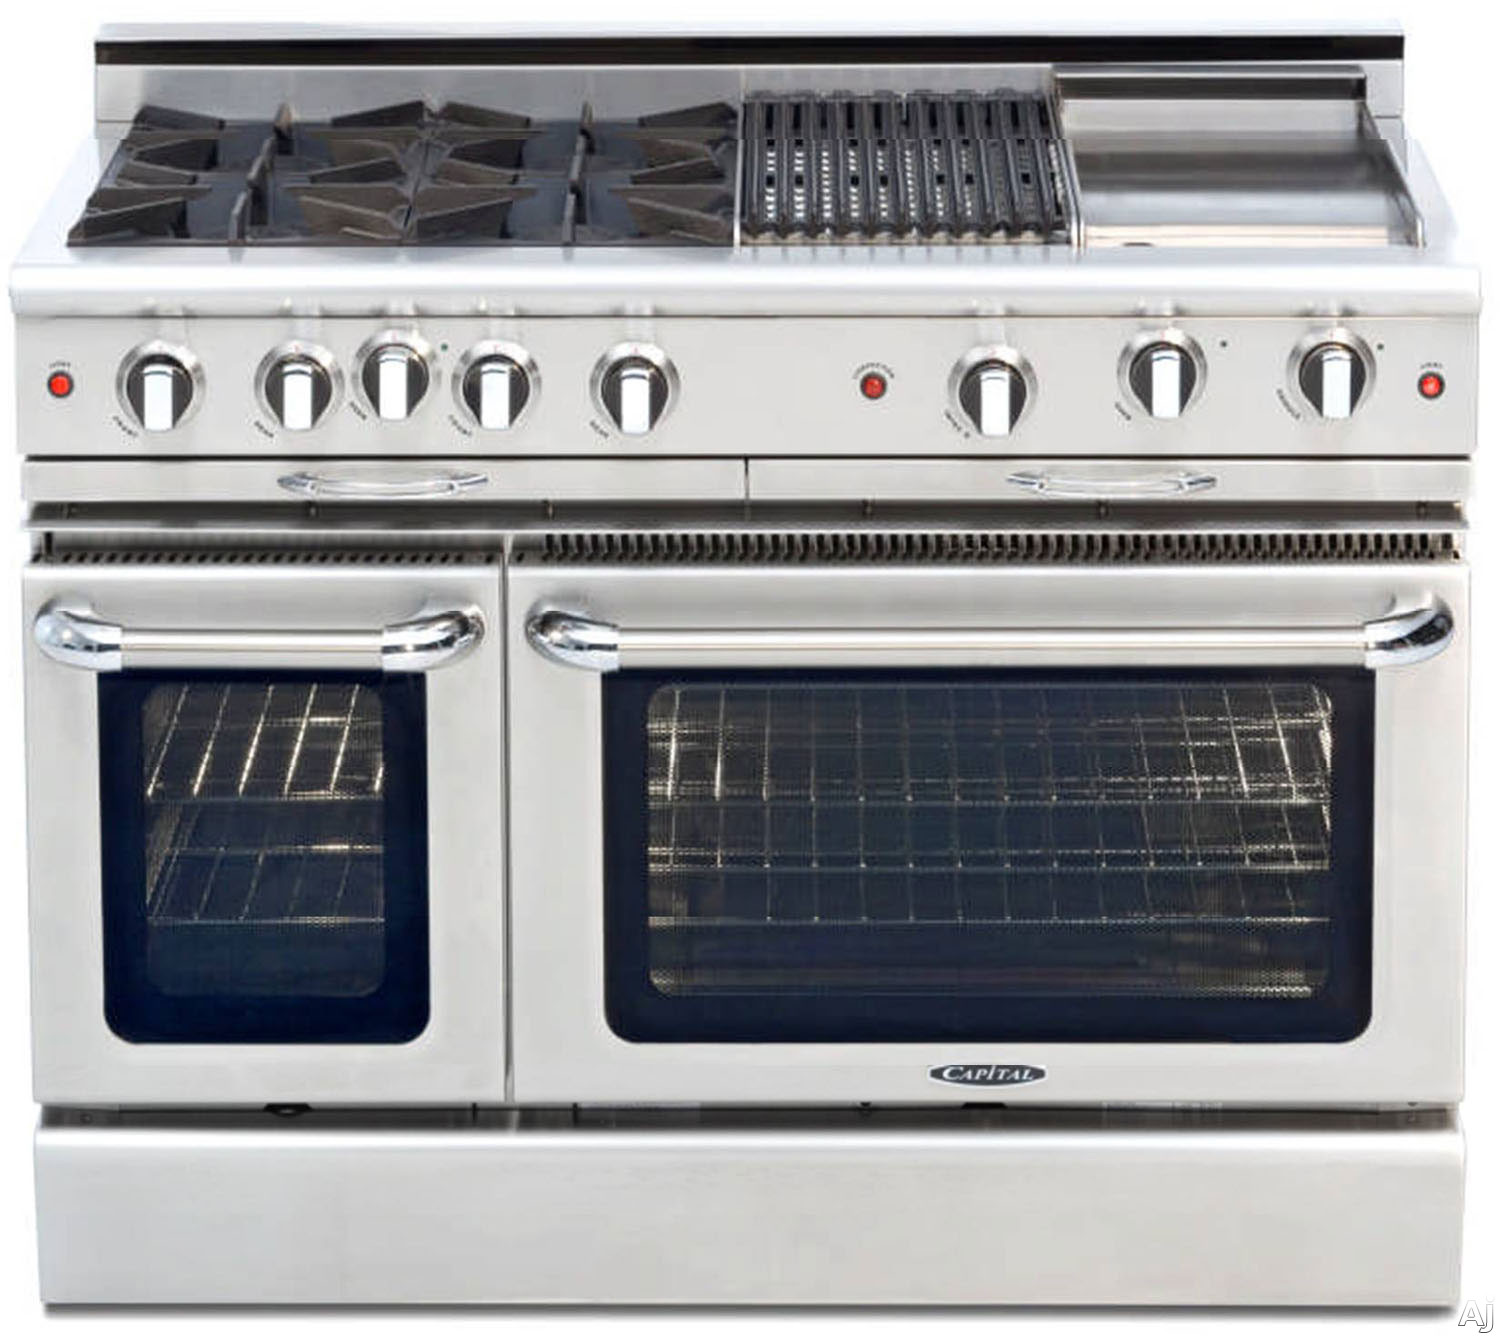 ... search results for Cooksessentials 18 L Convection Rotisserie Oven